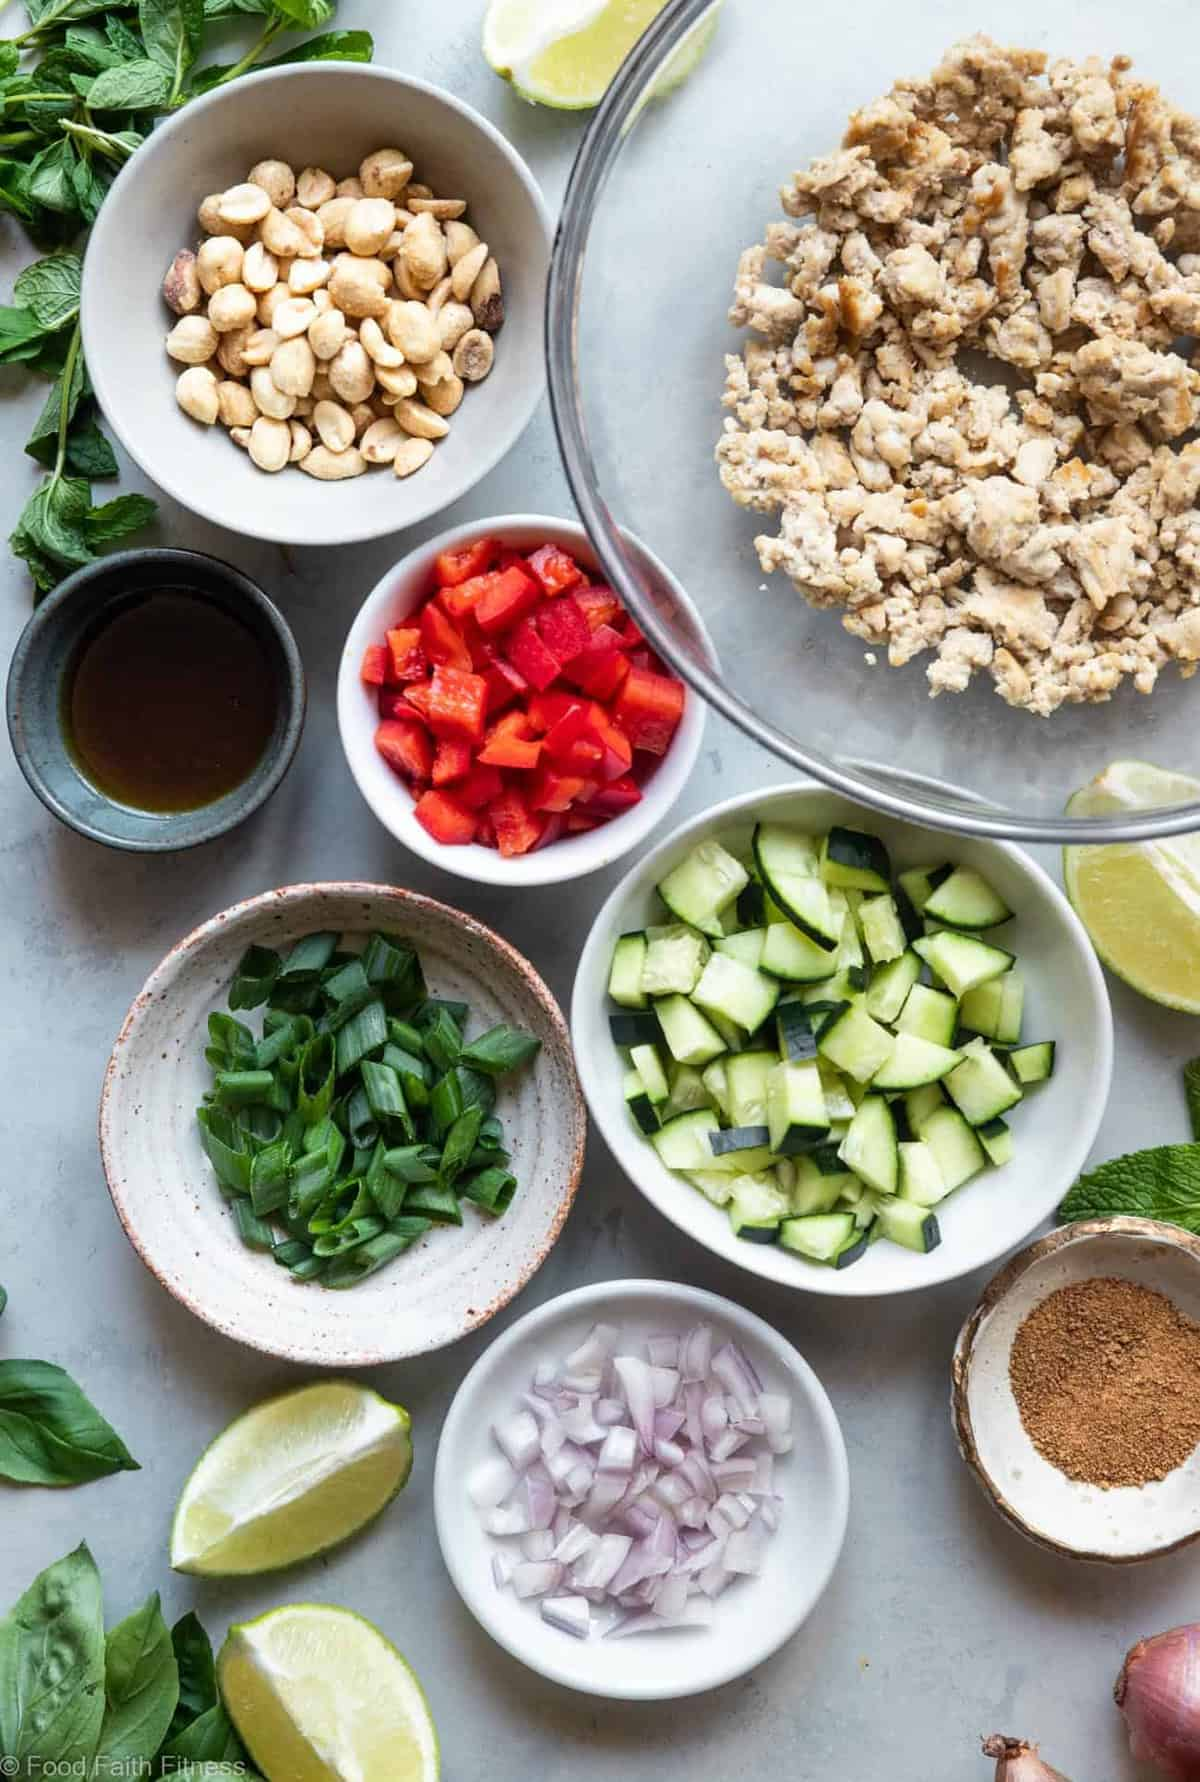 Low Carb Chicken Larb Thai Lettuce Wraps - An easy, healthy twist on a classic Thai salad! They're low carb, paleo friendly and super easy to make! Great for quick weeknight dinners! | #Foodfaithfitness | #glutenfree #lowcarb #paleo #healthy #Thai